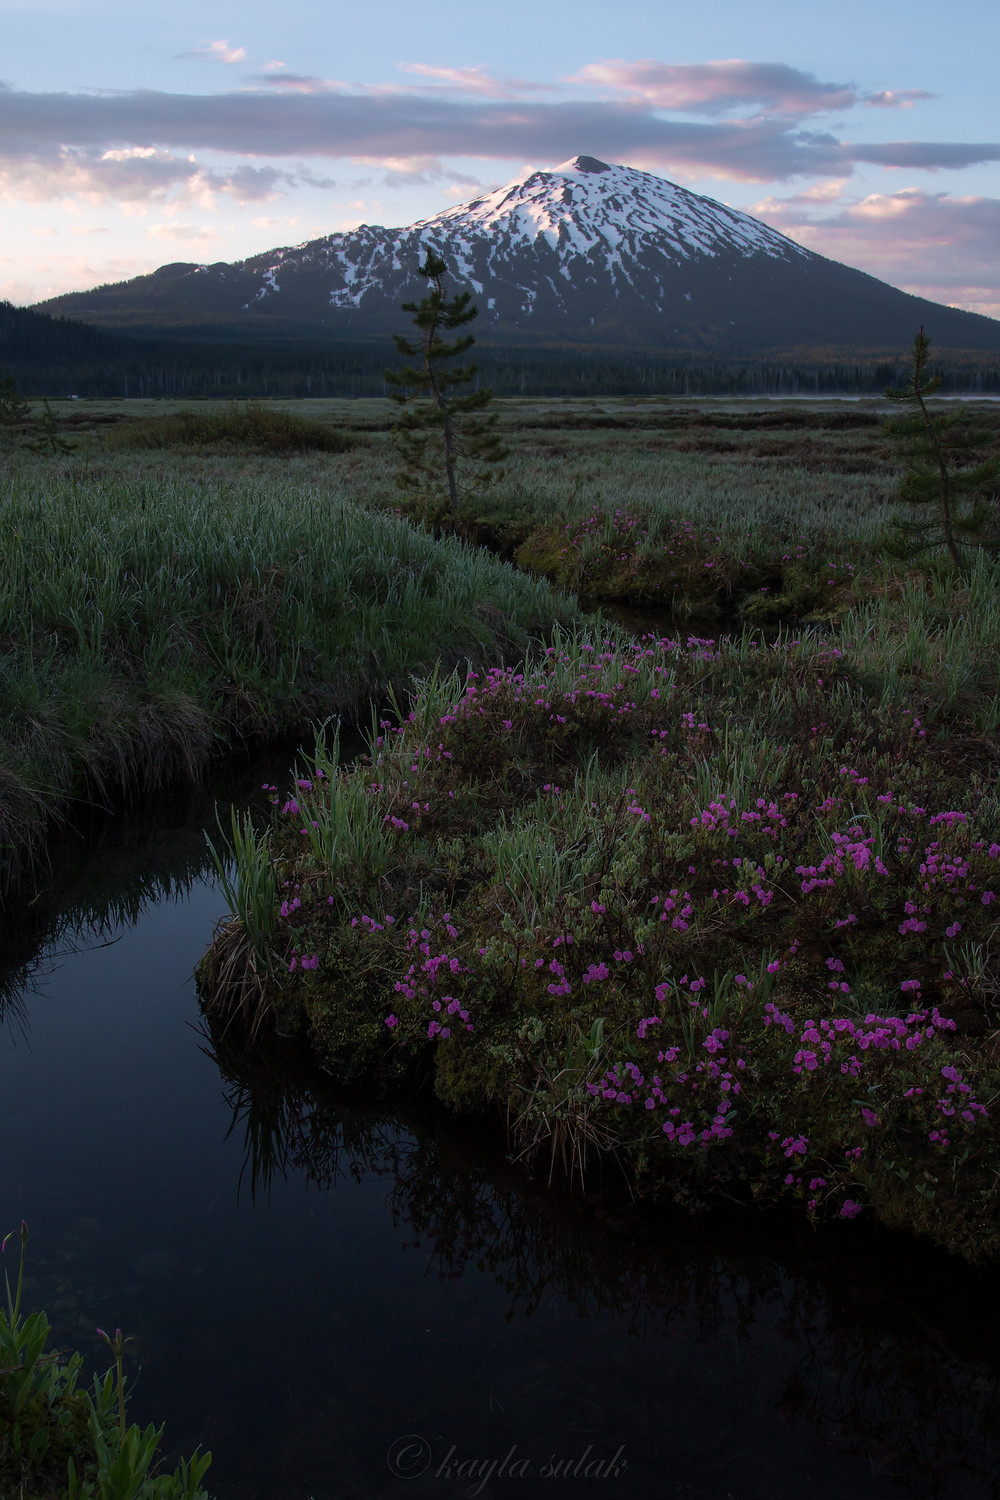 Mount Bachelor and flower meadows at sunrise, June 2019